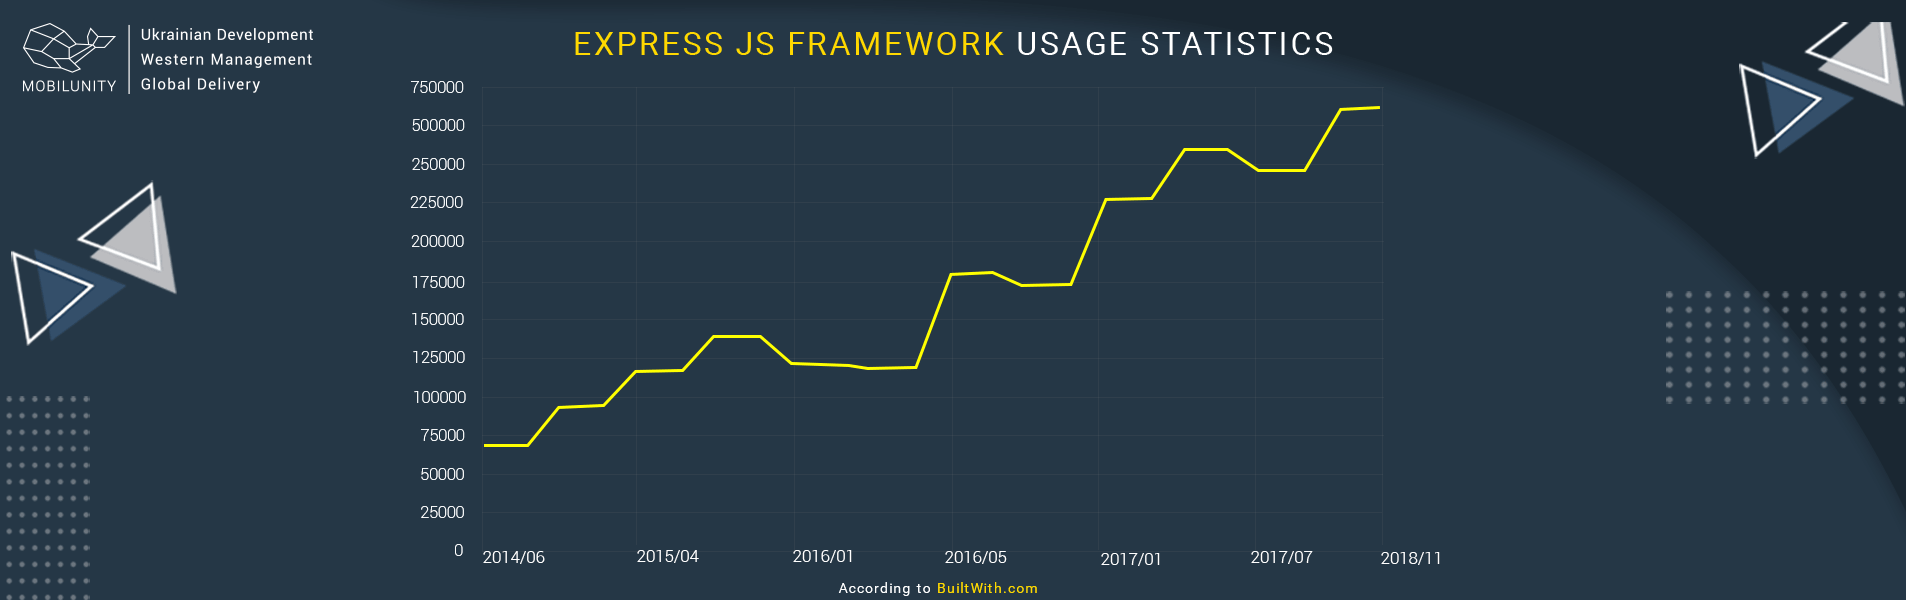 Express Development Usage Stats